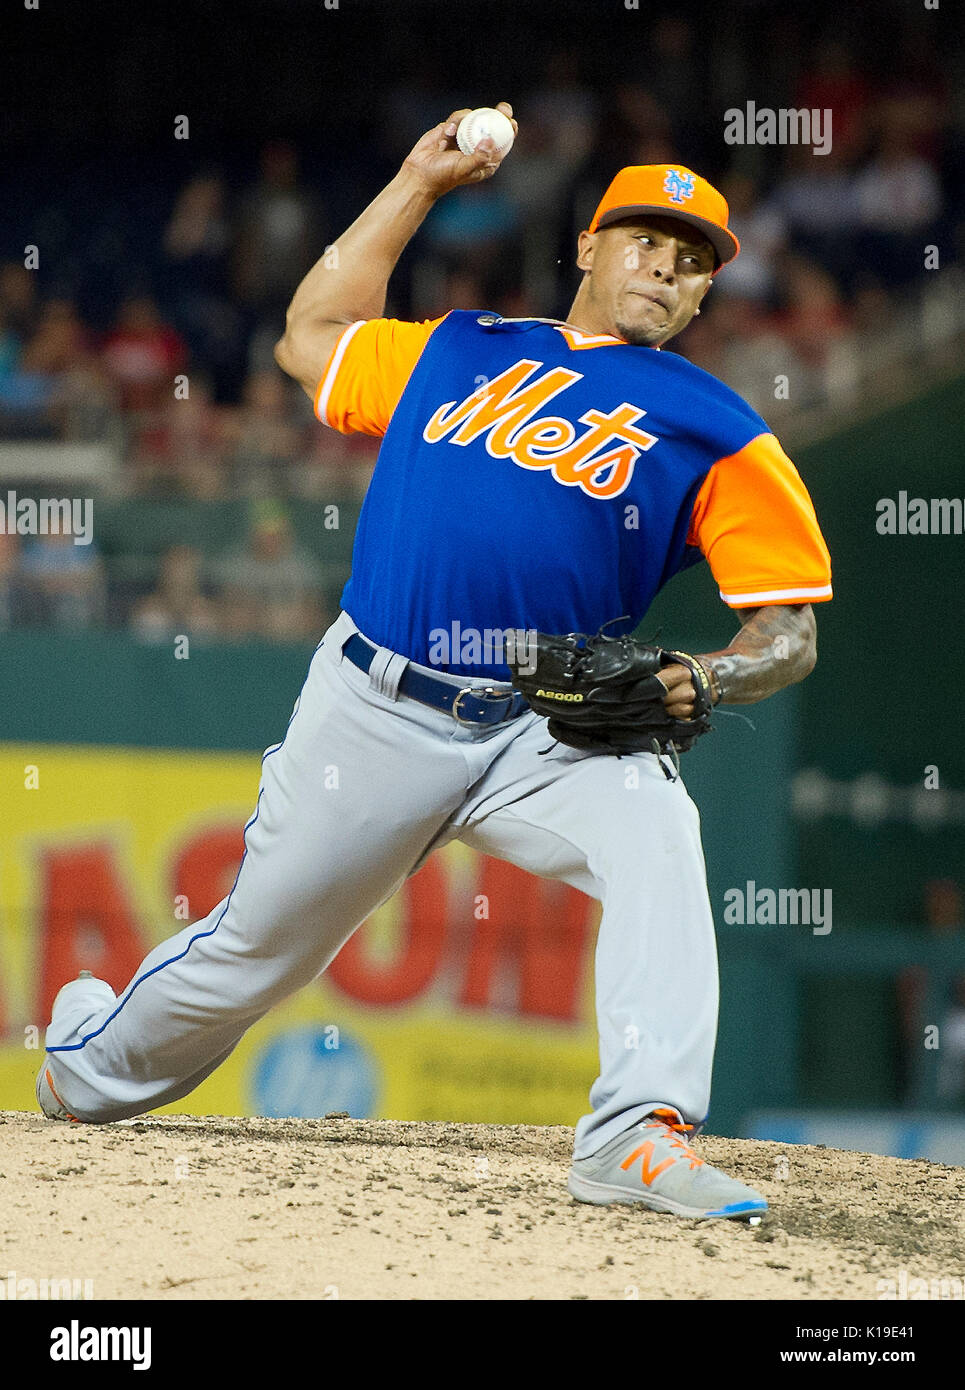 56fa24487 New York Mets relief pitcher AJ Ramos (44) pitches in the ninth inning  against